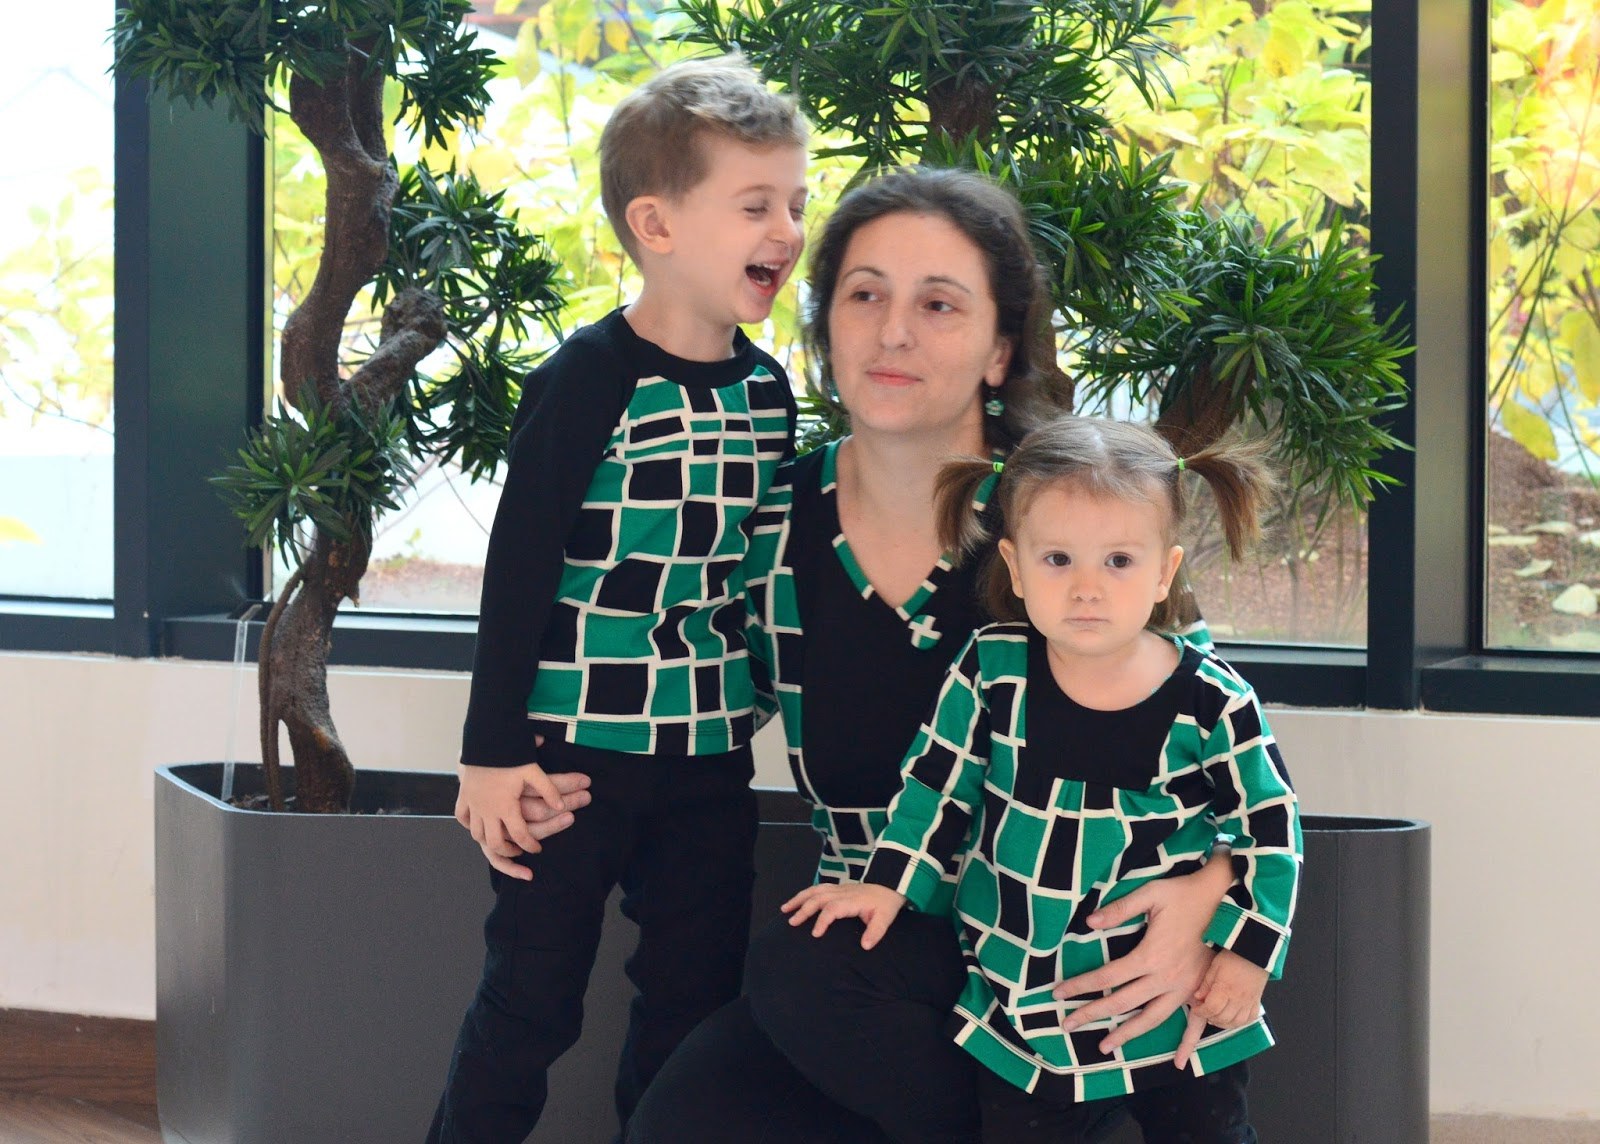 781eb42cf3fc7 The holiday season is getting close and we wanted to create a feel of even  closer in coordinating outfits. I got this green, black & white jersey a  week or ...